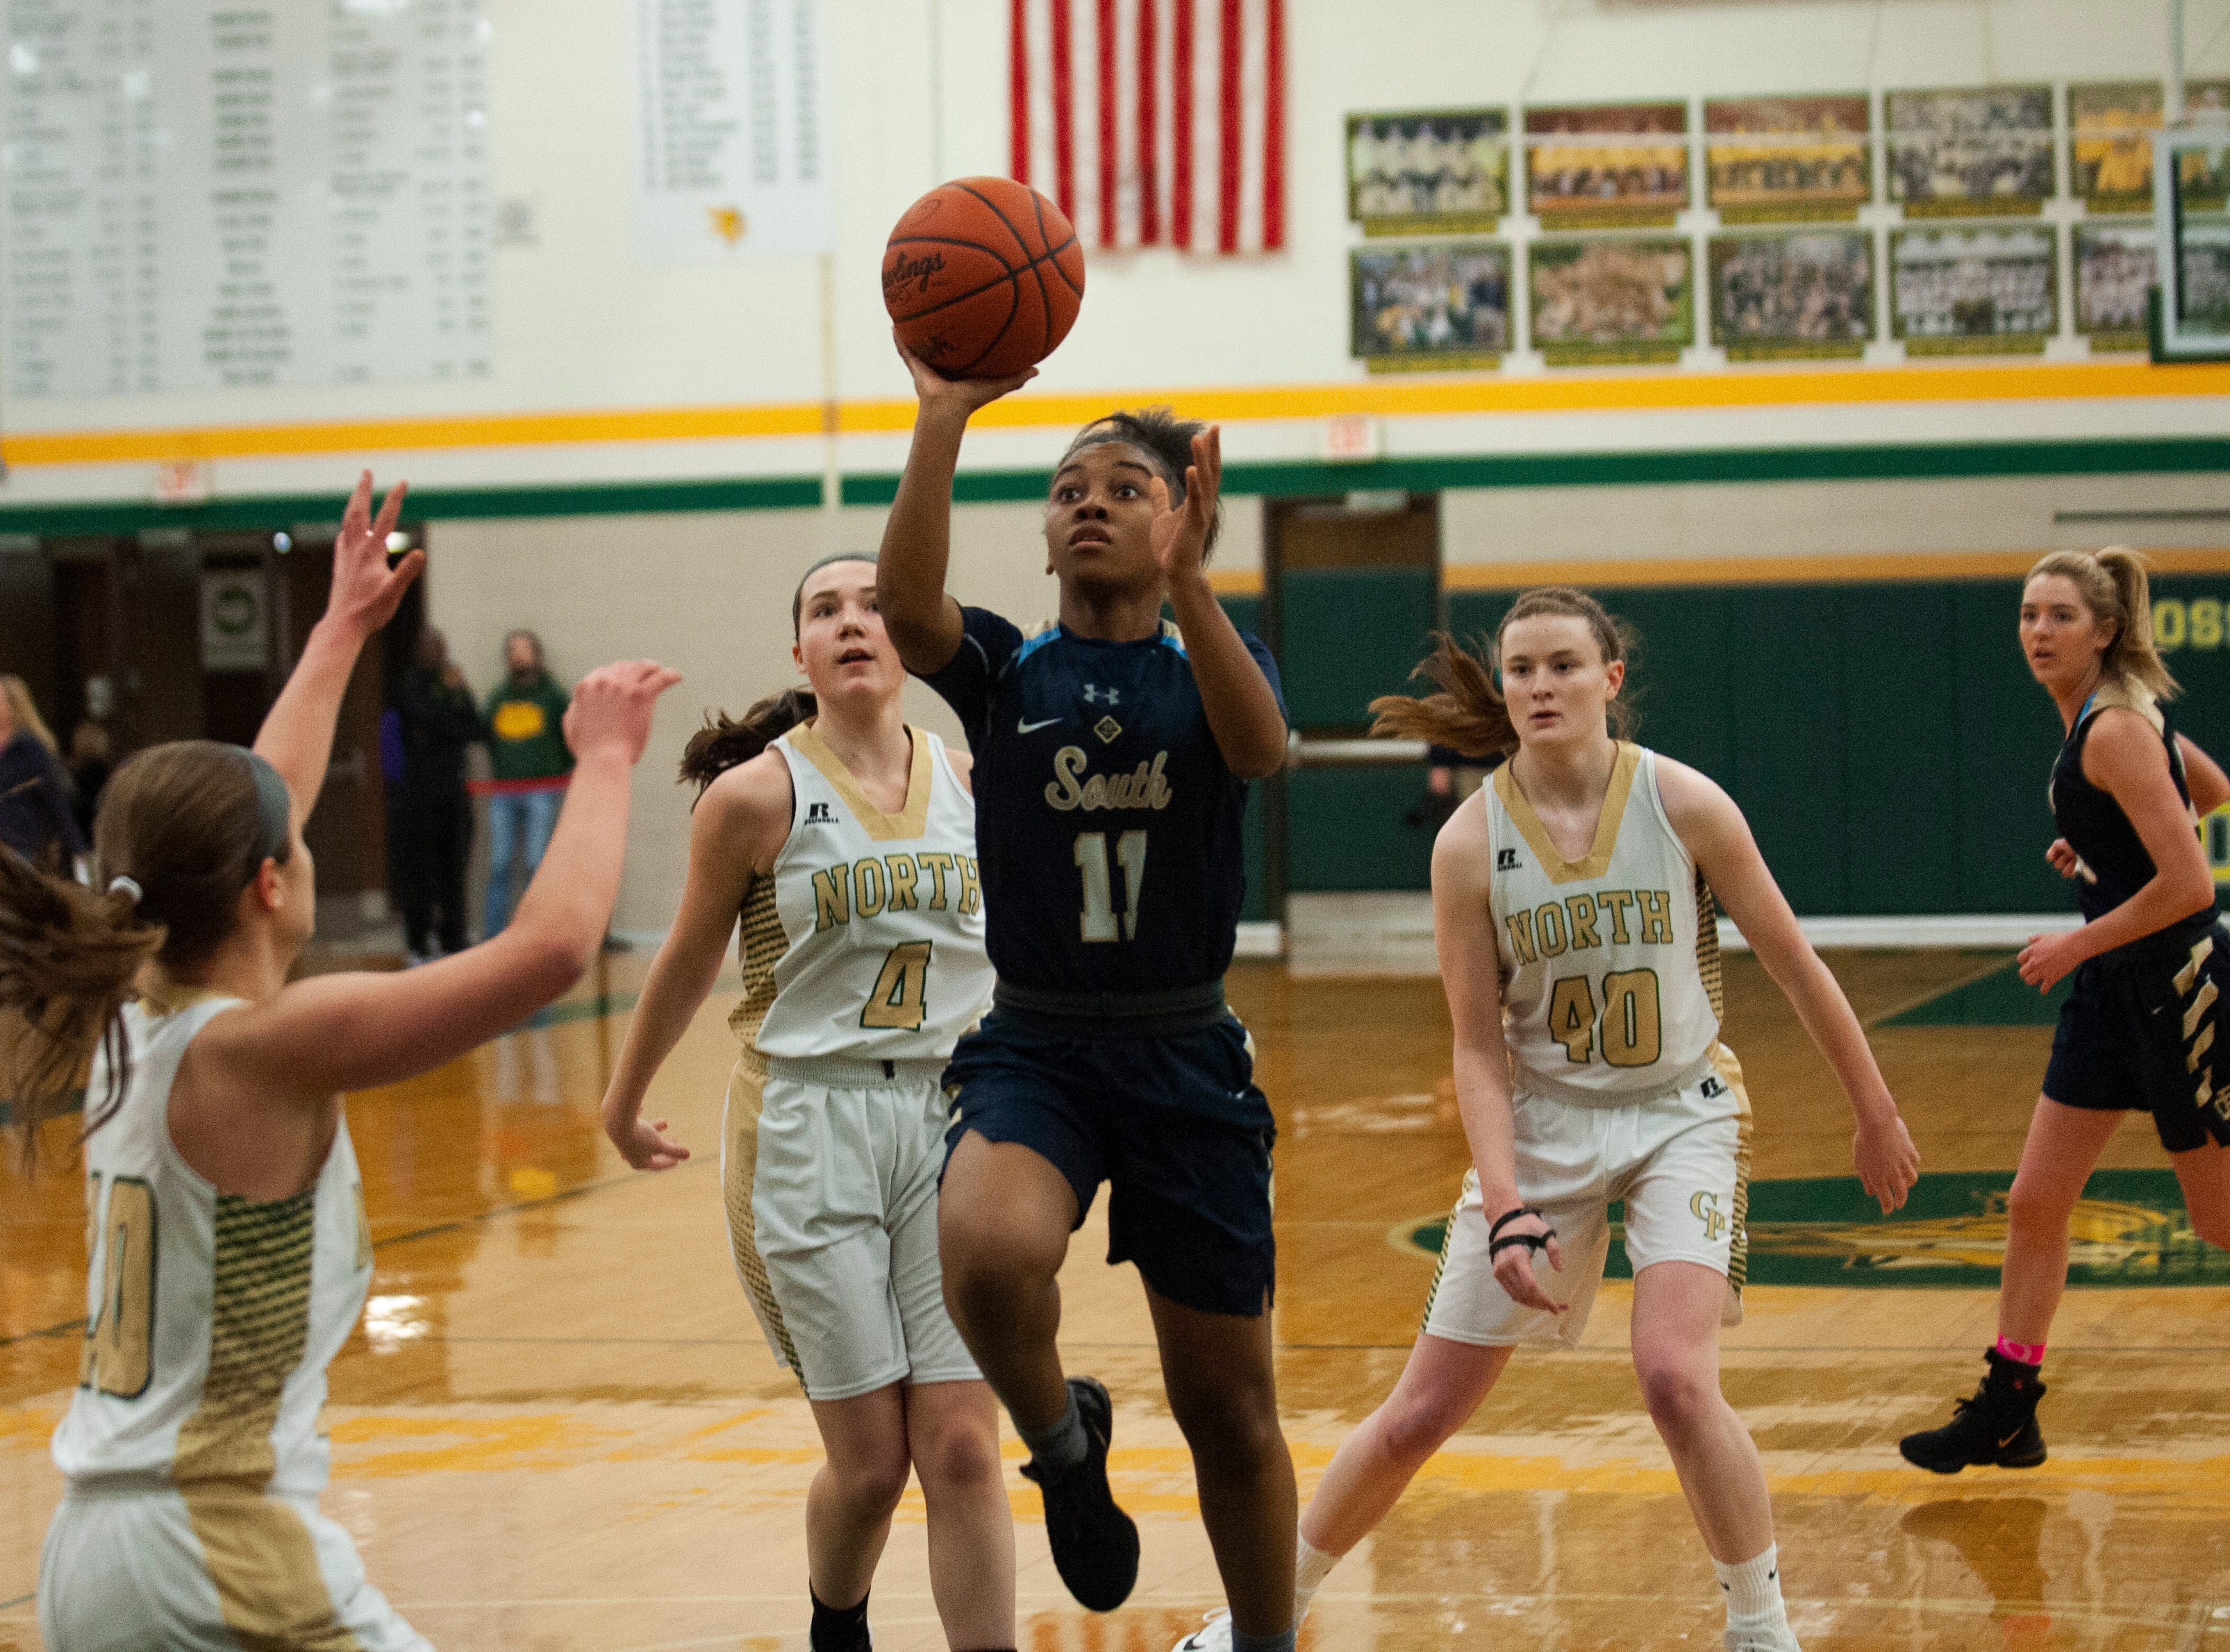 Grosse Pointe South's Sydni Hall goes up for a shot in the paint against Grosse Pointe North defenders during the first half at Grosse Pointe North High School  on Friday, March 8, 2019.